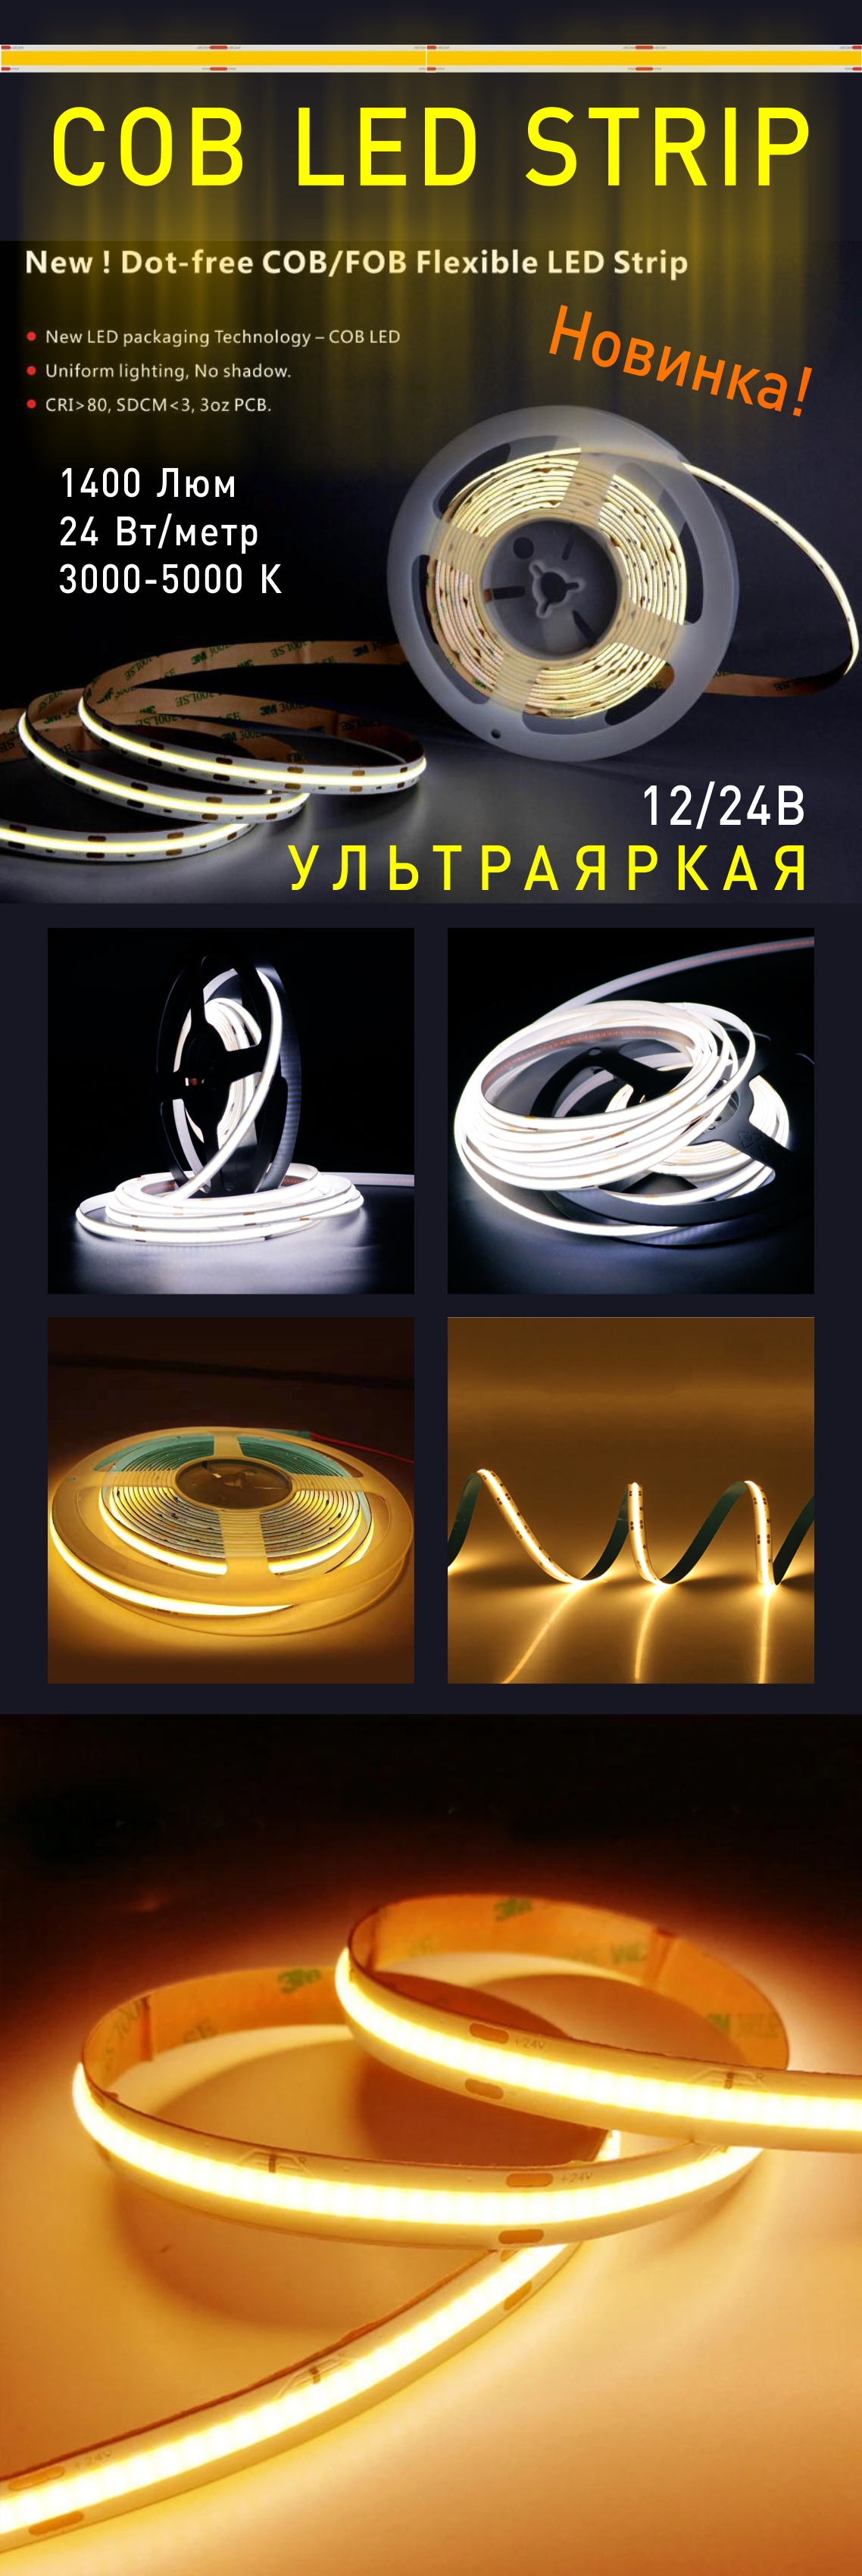 cob_led_strip